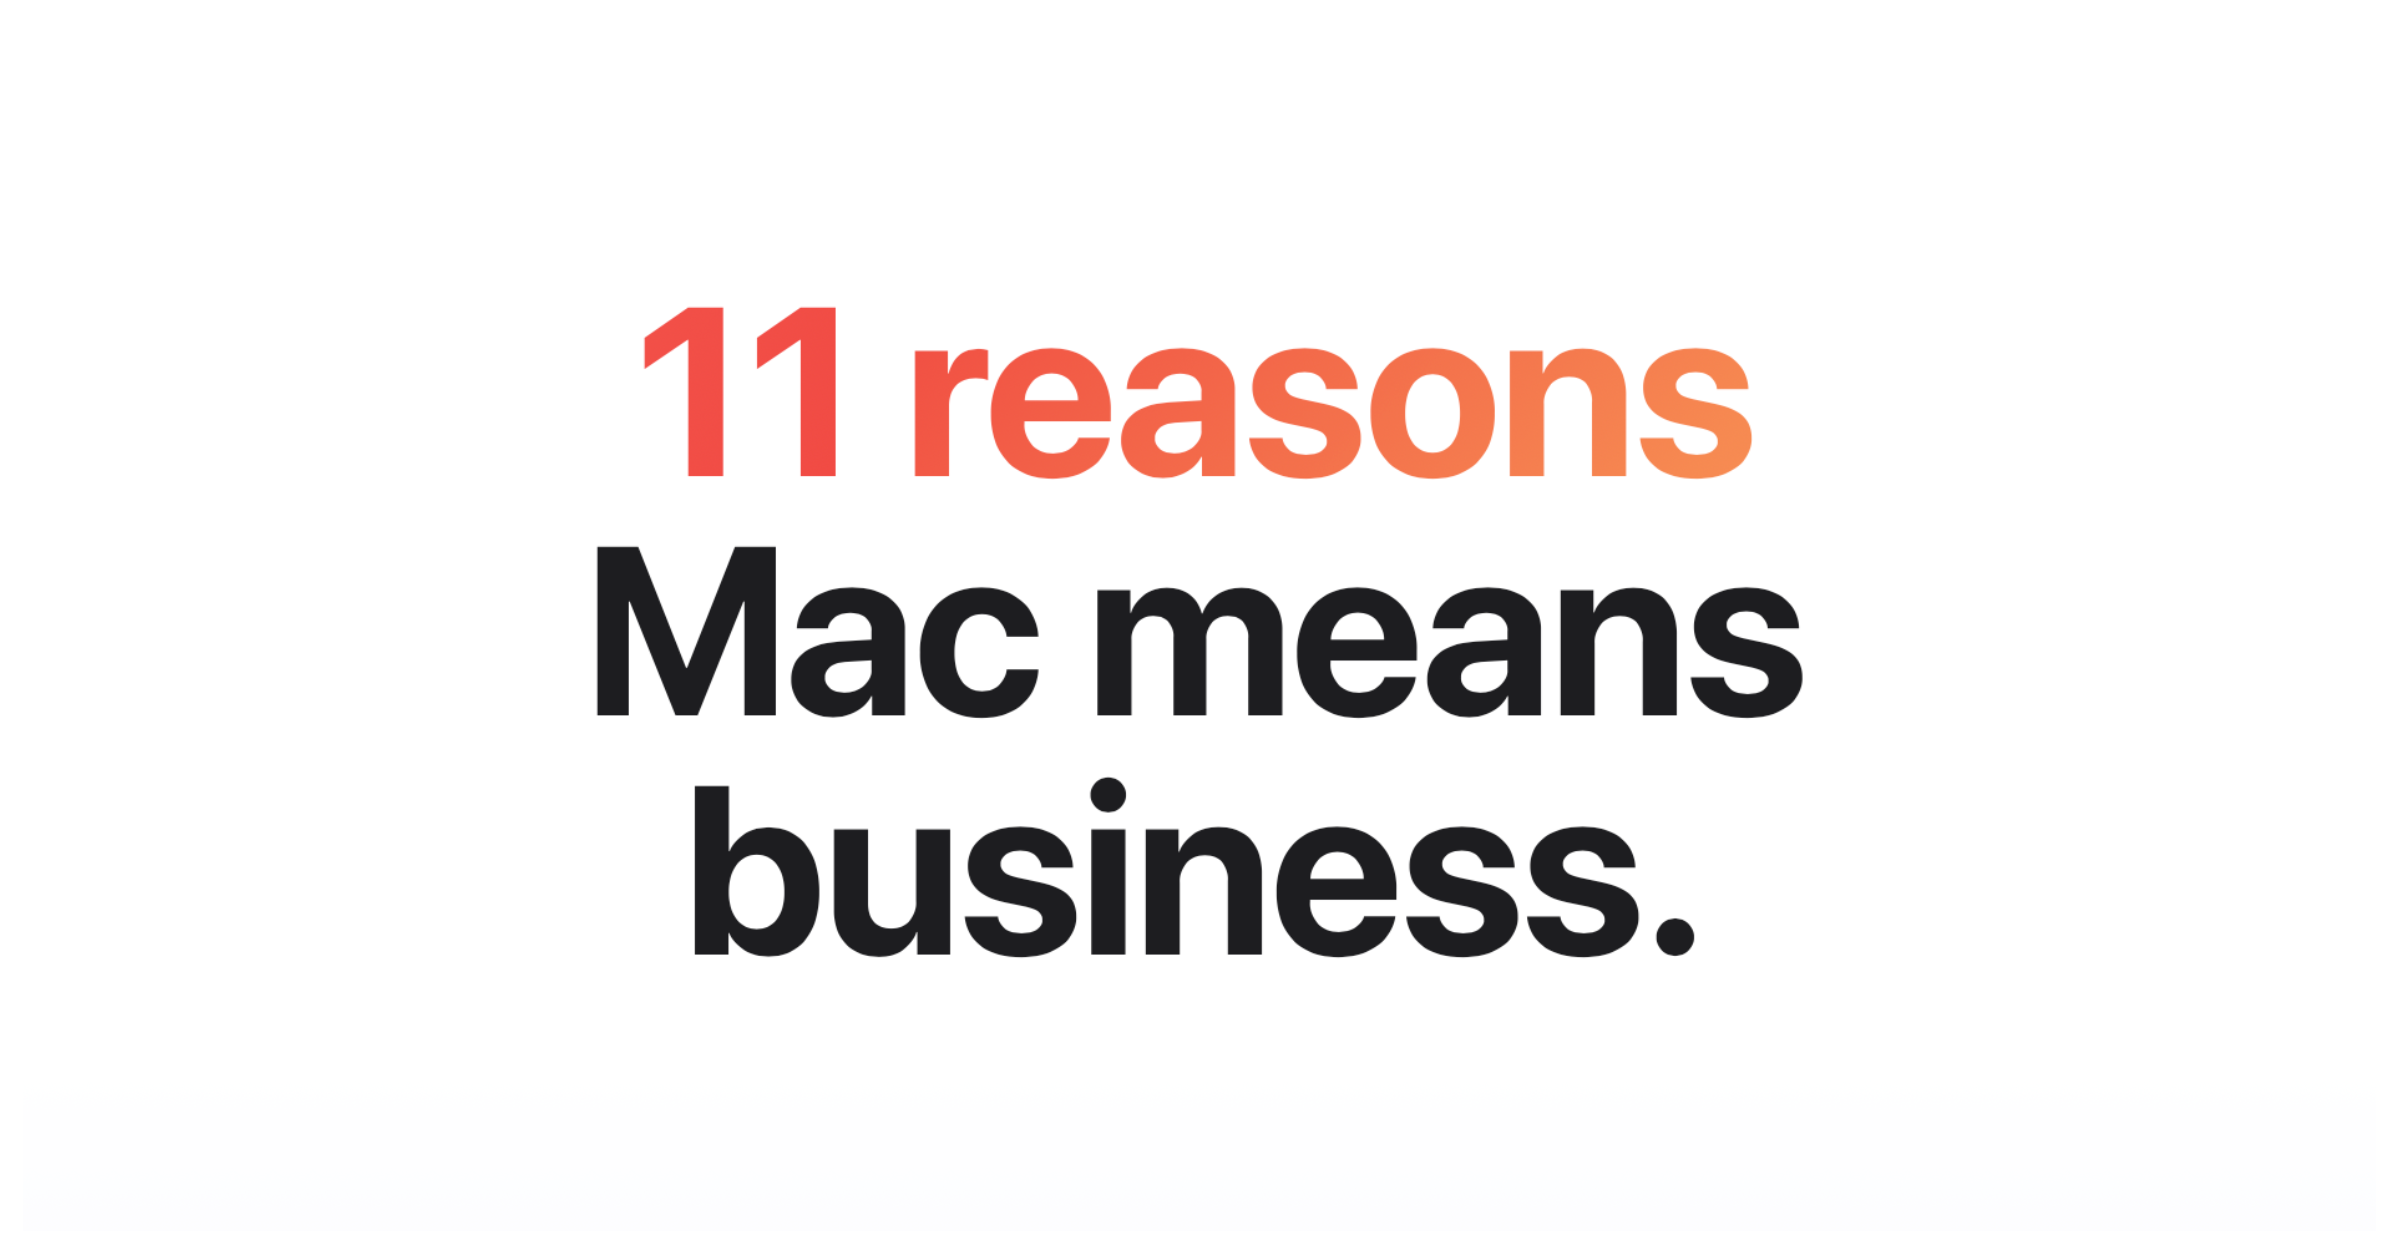 Mac means business